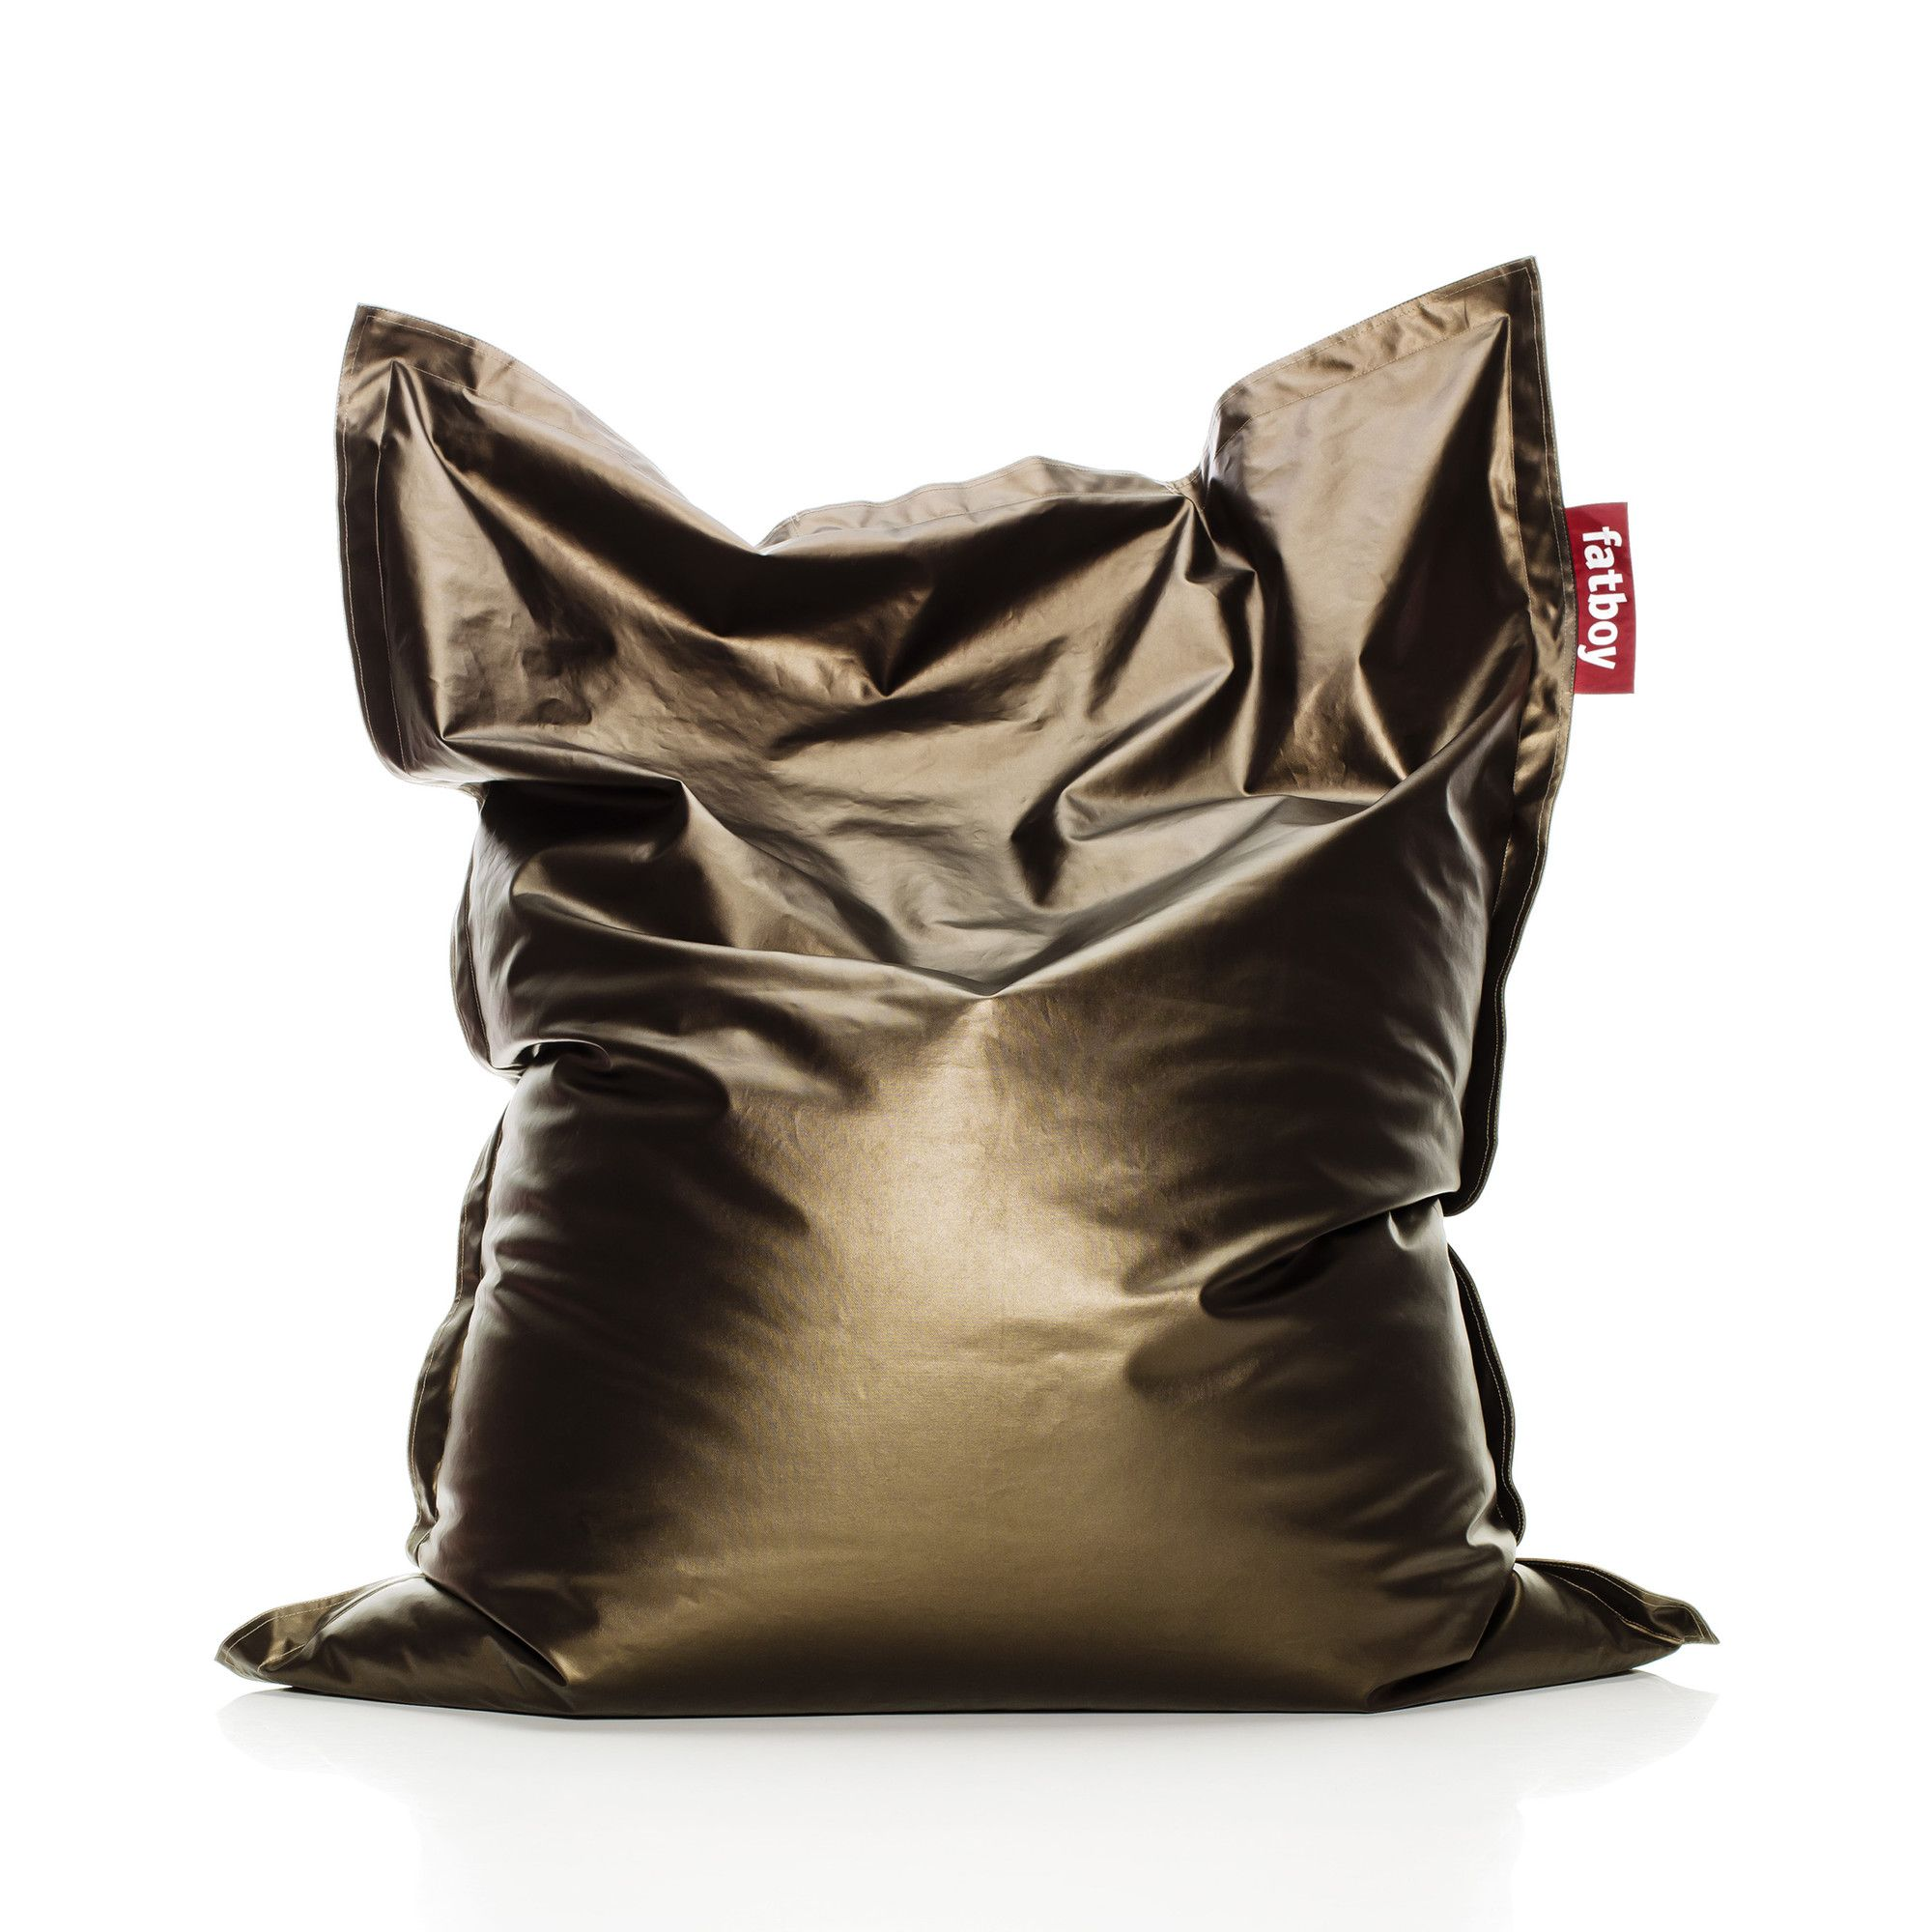 Fatboy metahlowski bean bag lounger u reviews wayfair ideas for